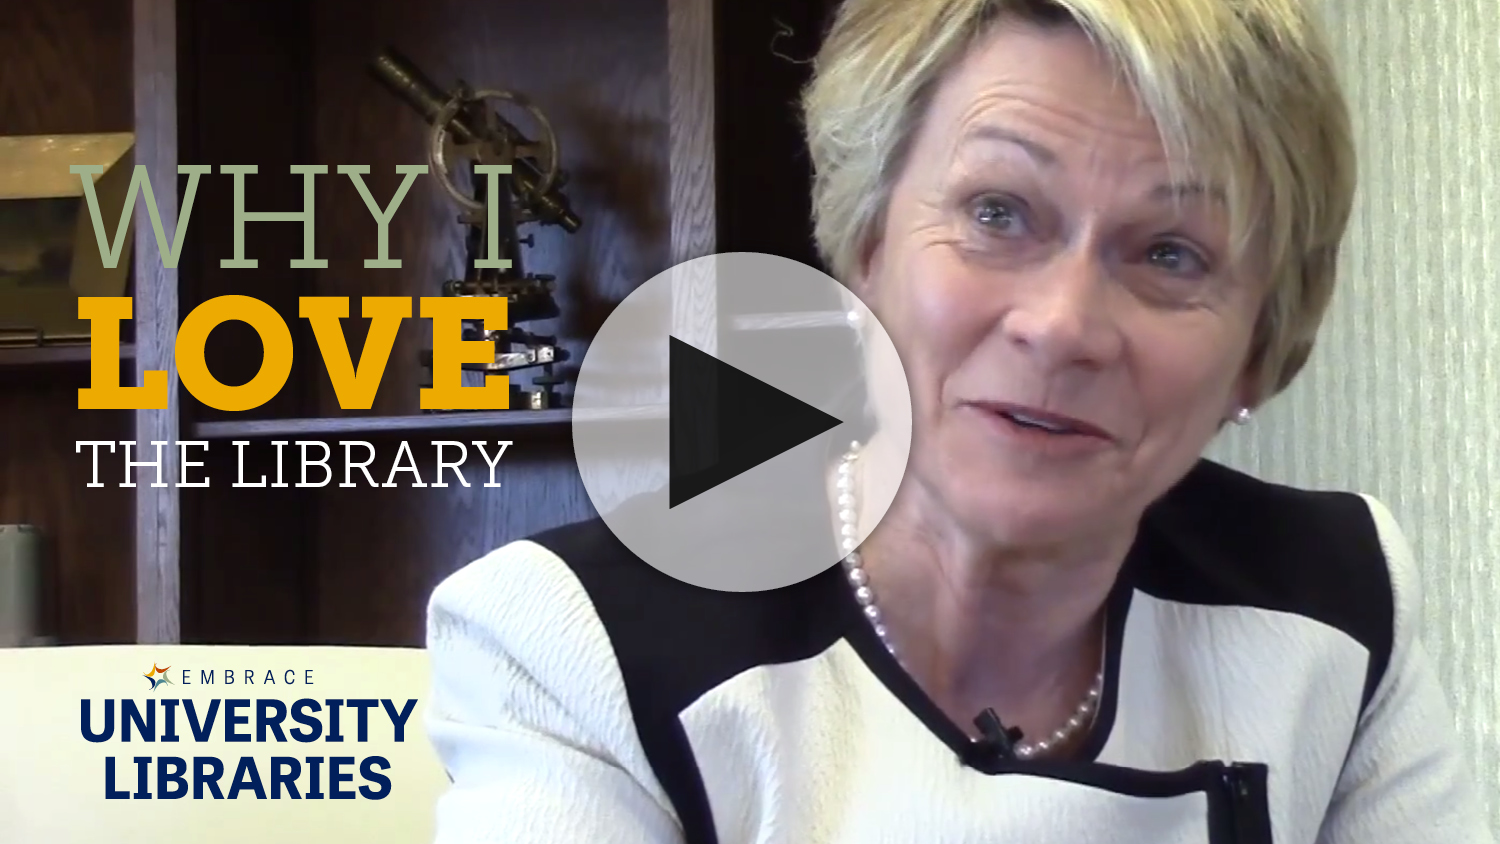 Check out this quick video to learn why people love the library